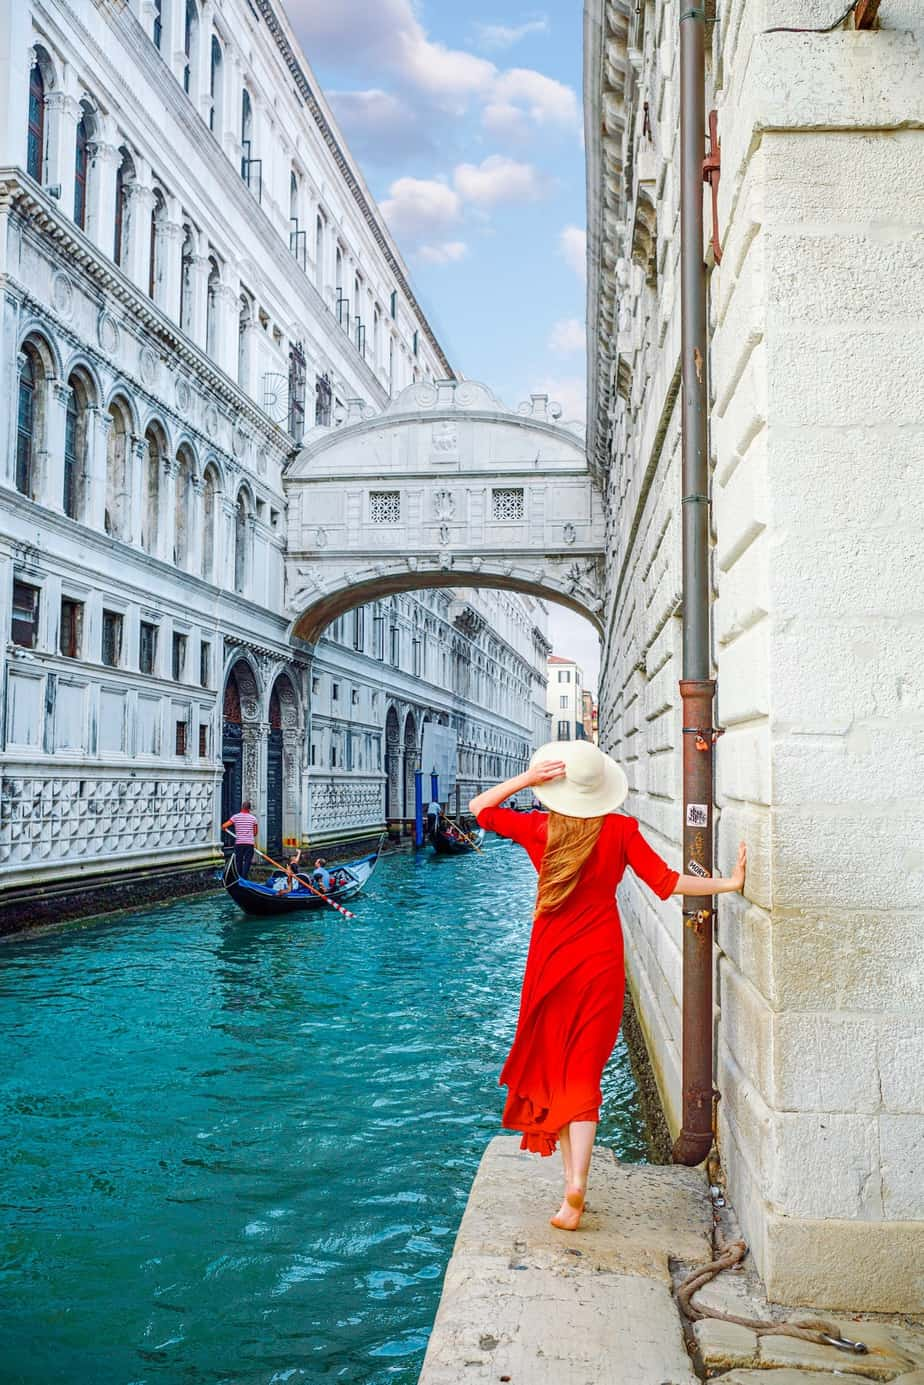 The Bridge Of Sighs From The Bottom Is A unique Instagram spot in Venice | Best Venice photo locations for Instagram | Bridge Of Sighs Venice photo spots | photography in Venice | hidden photo spots in Venice | tips for visiting Venice Italy | best instagrammable places in Venice #venice #photography